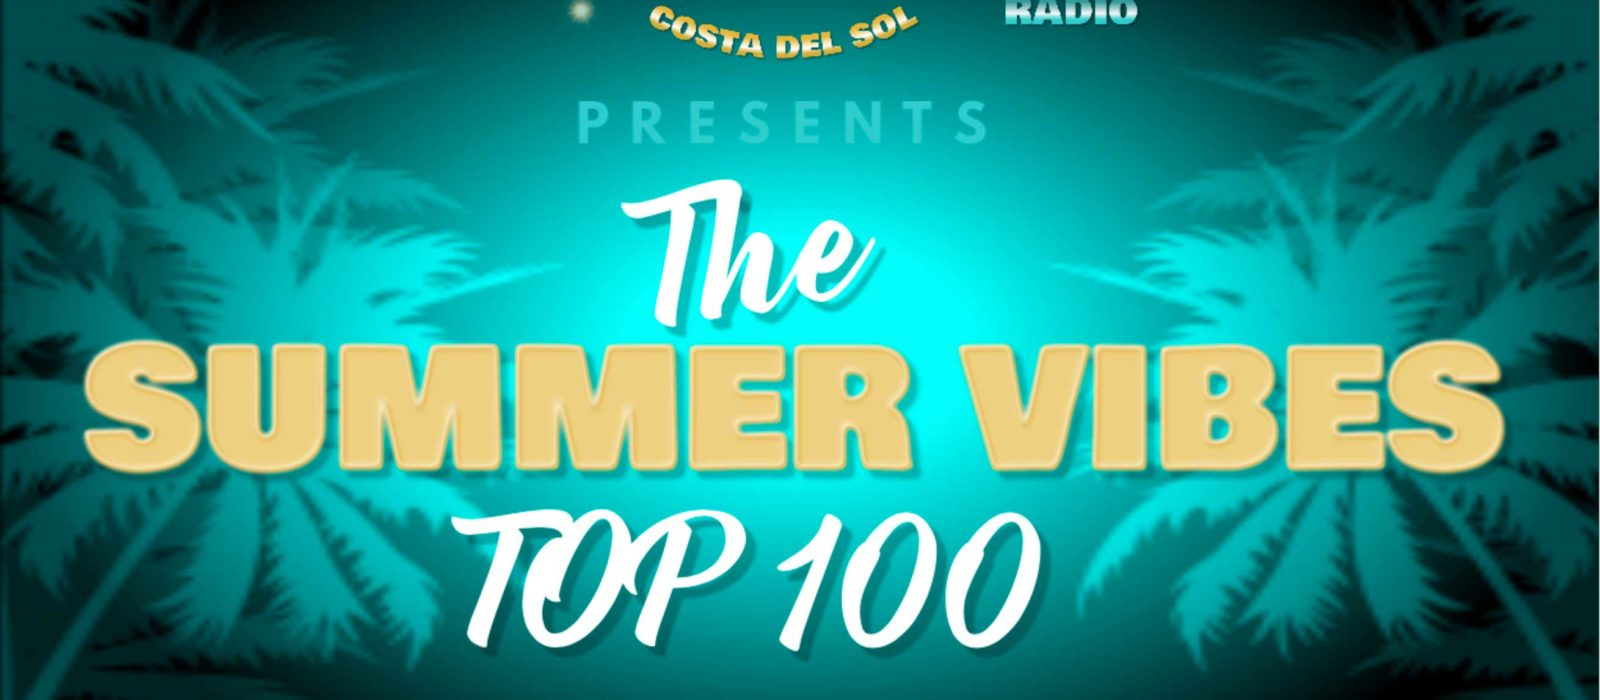 Summer Vibes Top 100